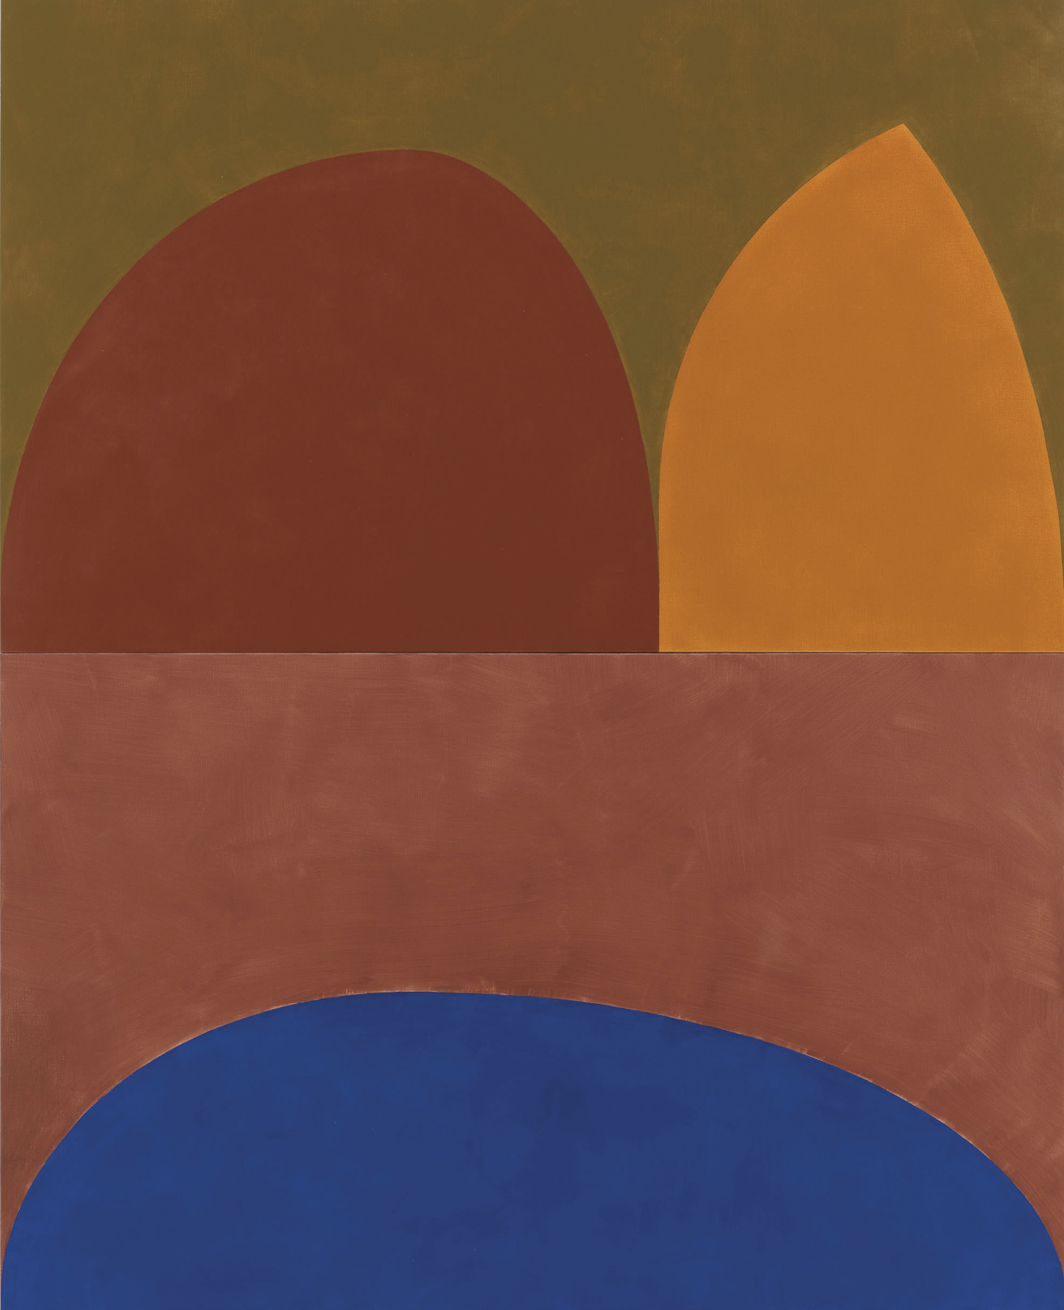 "Suzan Frecon, stone cathedral, 2019, diptych, oil on linen, overall 108 1⁄2 × 87 3⁄4""."